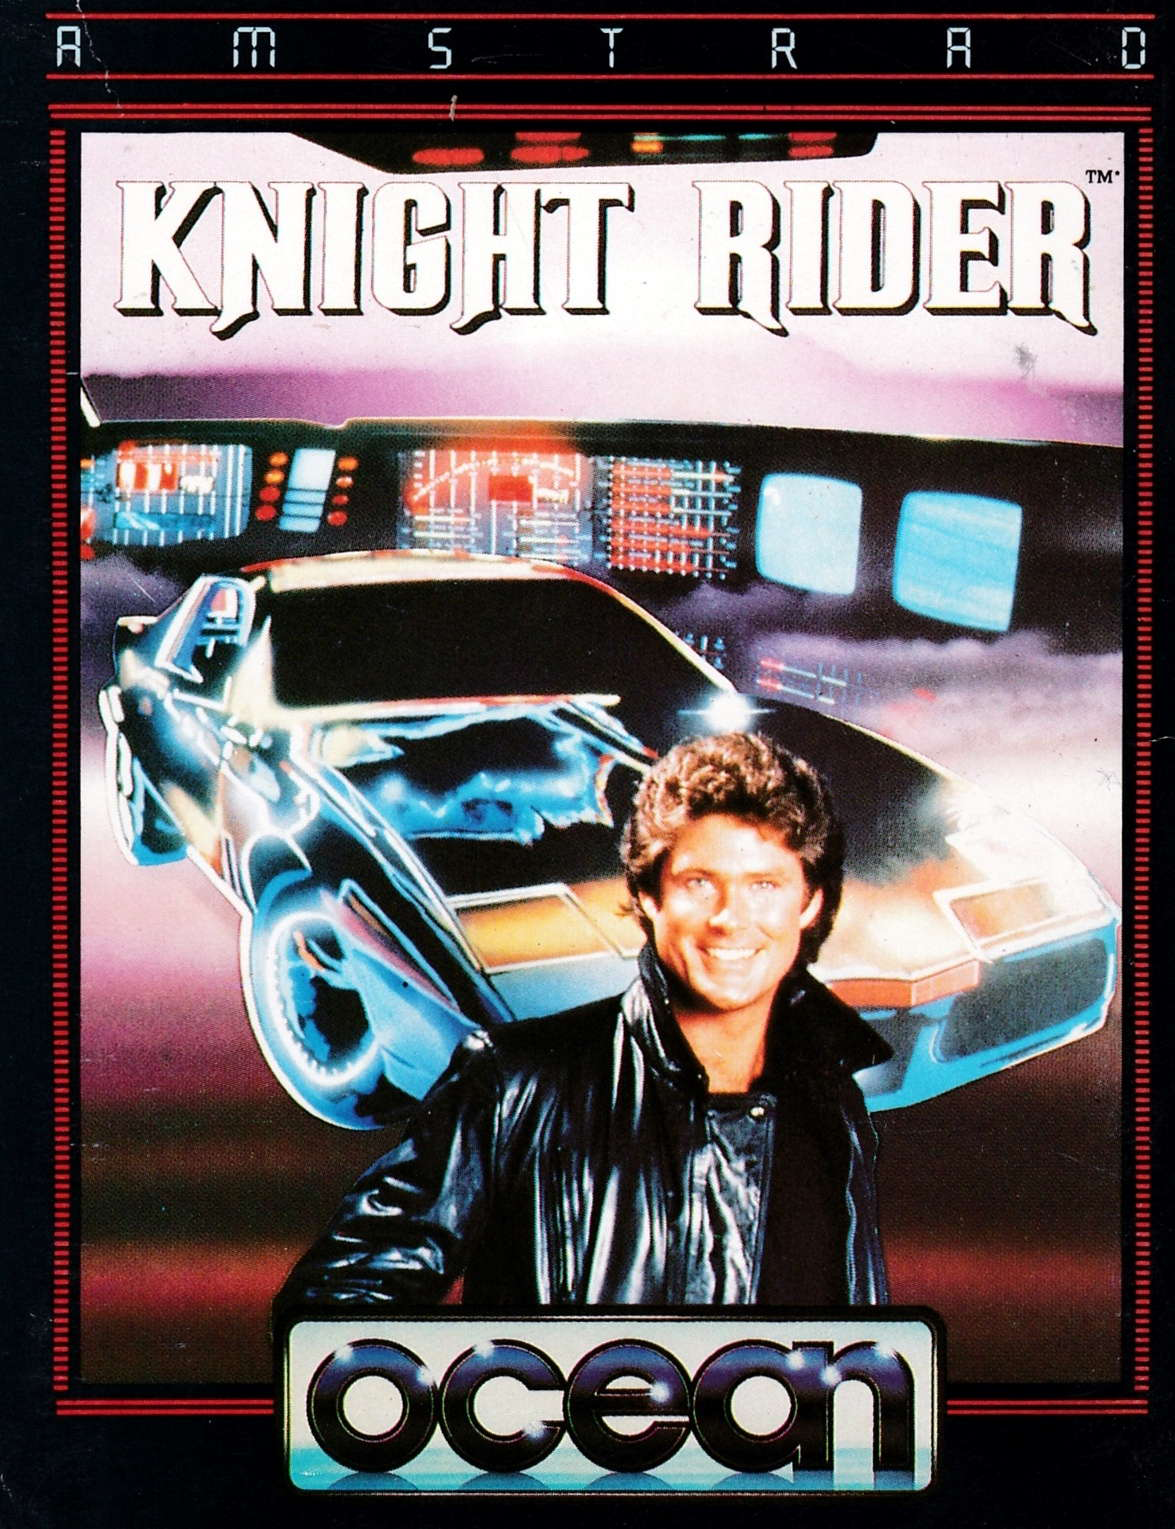 cover of the Amstrad CPC game Knight Rider  by GameBase CPC